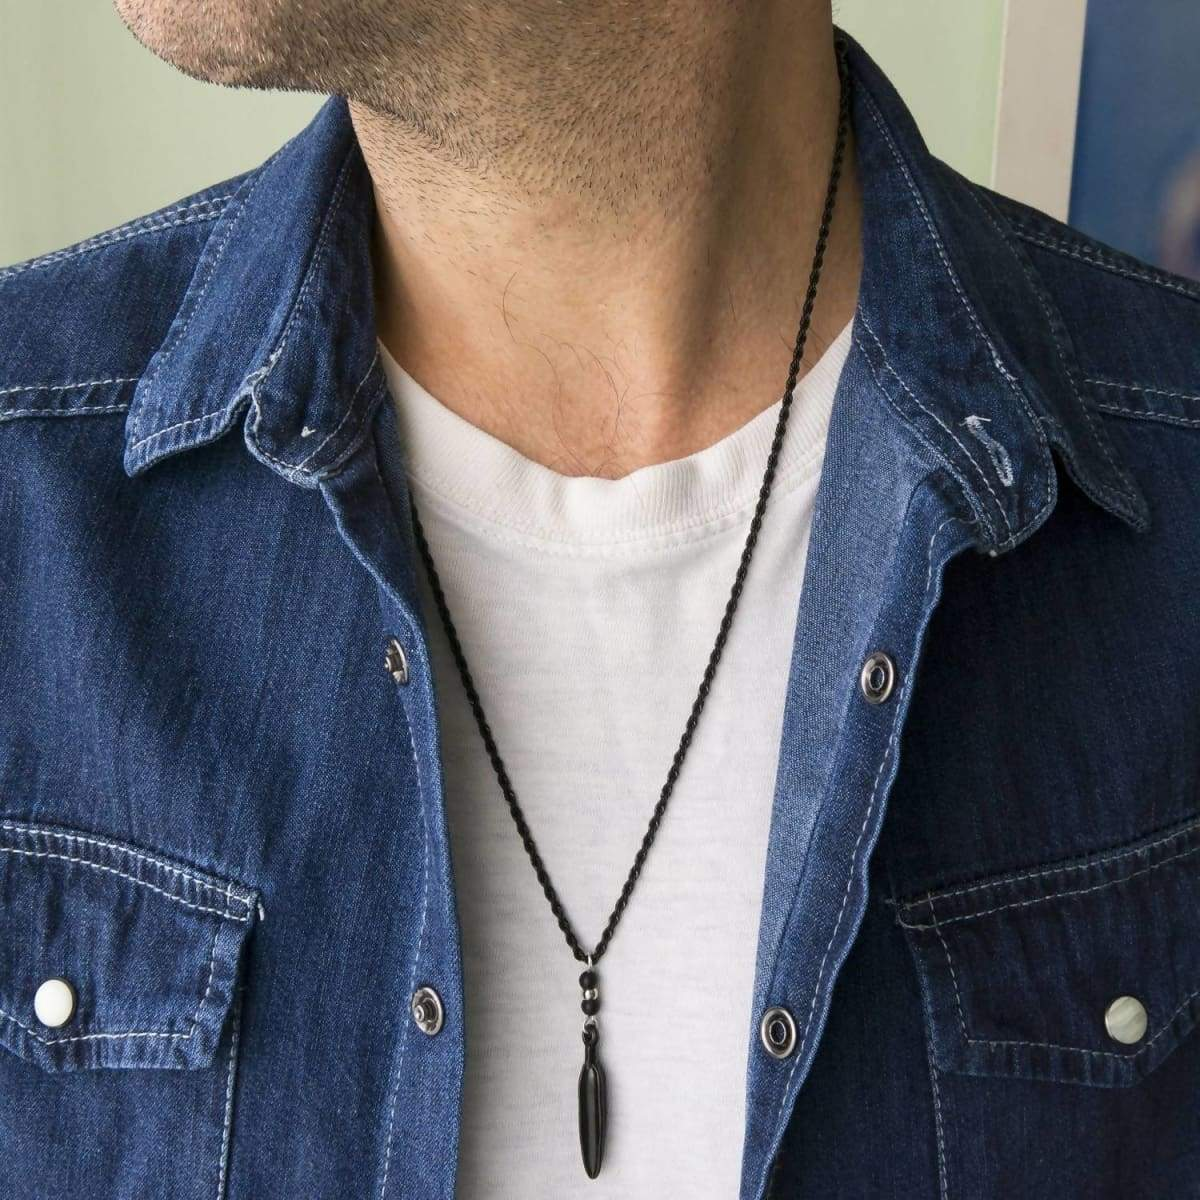 Necklaces Men Necklace - stainless steel - Jewelry - Gift - Boyfriend - Husband - For Him - Present - Male